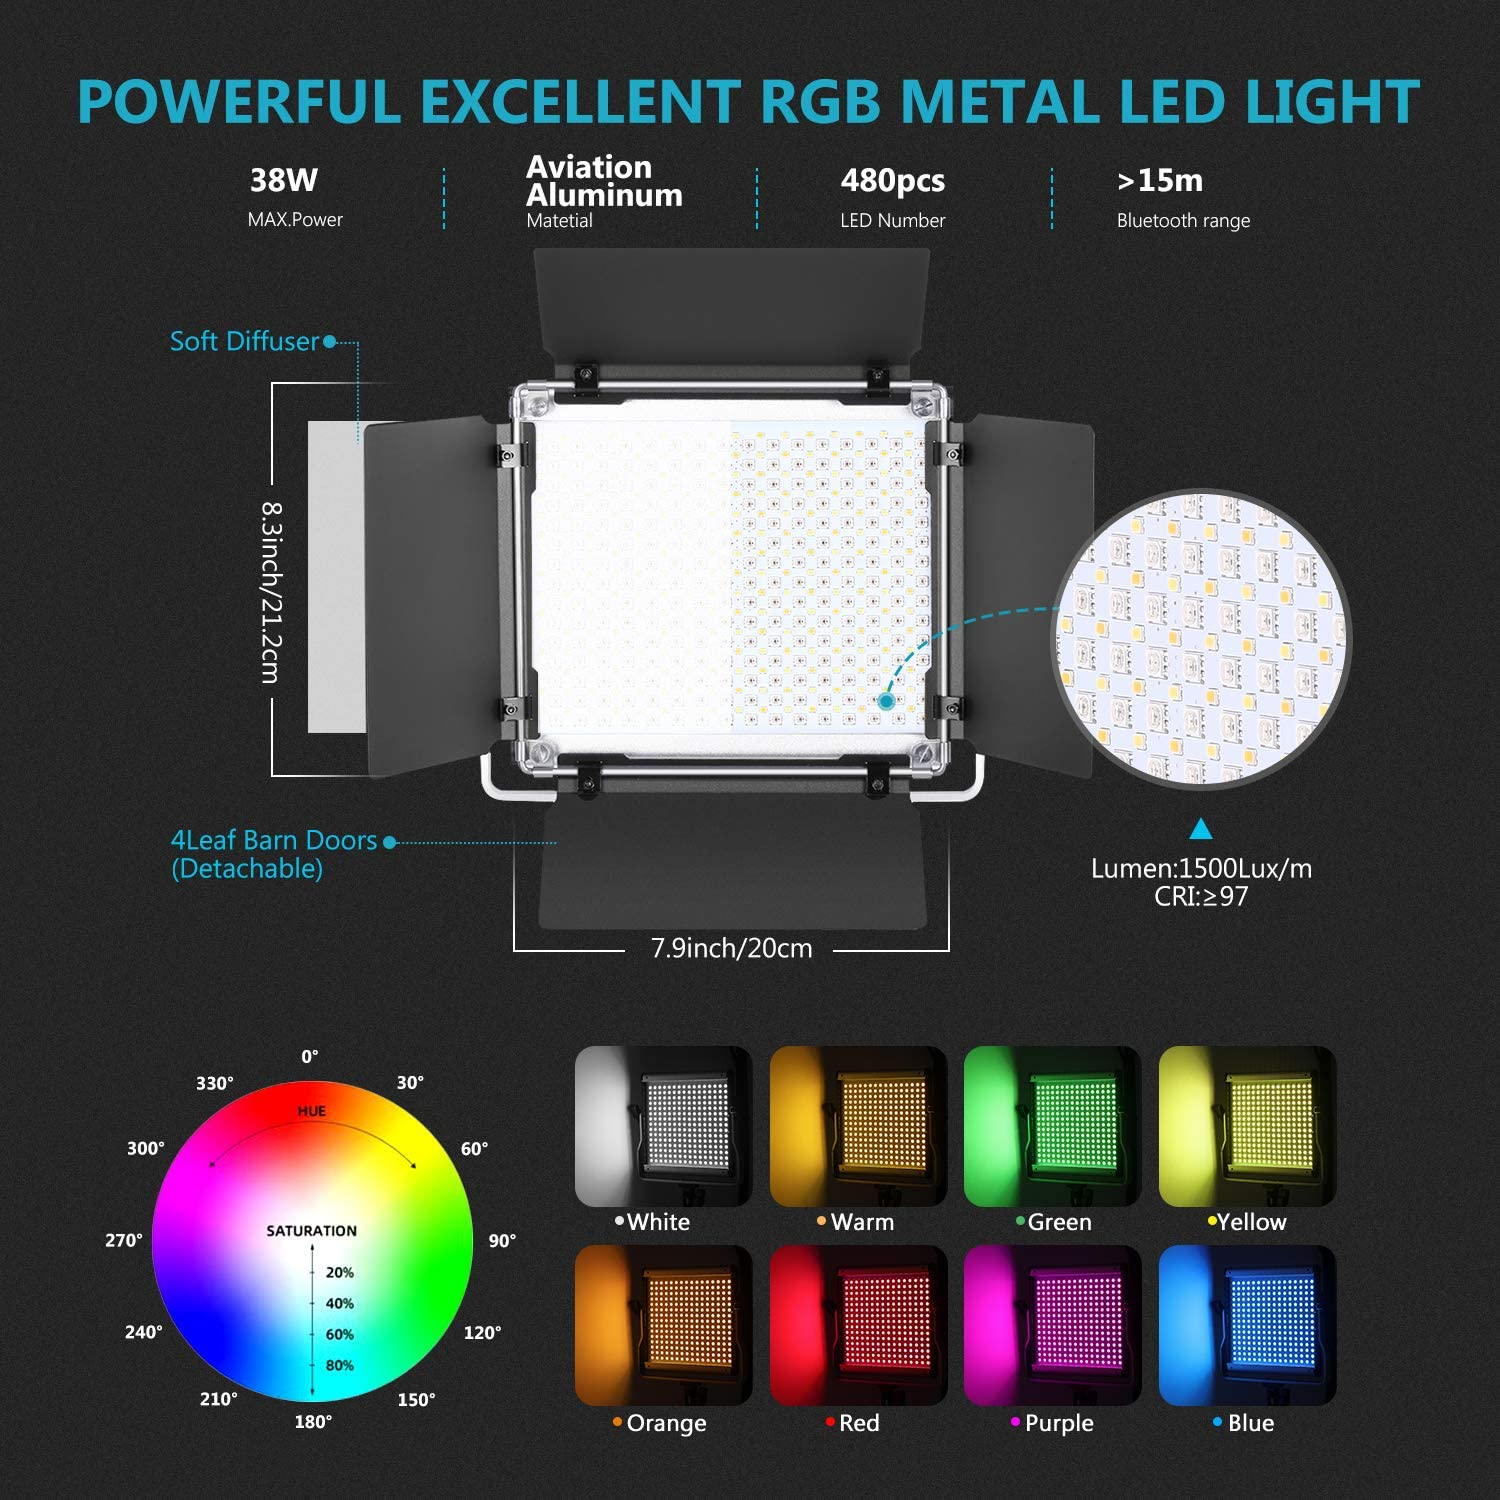 Neewer 2 Packs 480 RGB Led Light with APP Control 480 SMD LEDs CRI95//3200K-5600K//Brightness 0-100/%//0-360 Adjustable Colors//9 Applicable Scenes Photography Video Lighting Kit with Stands and Softbox